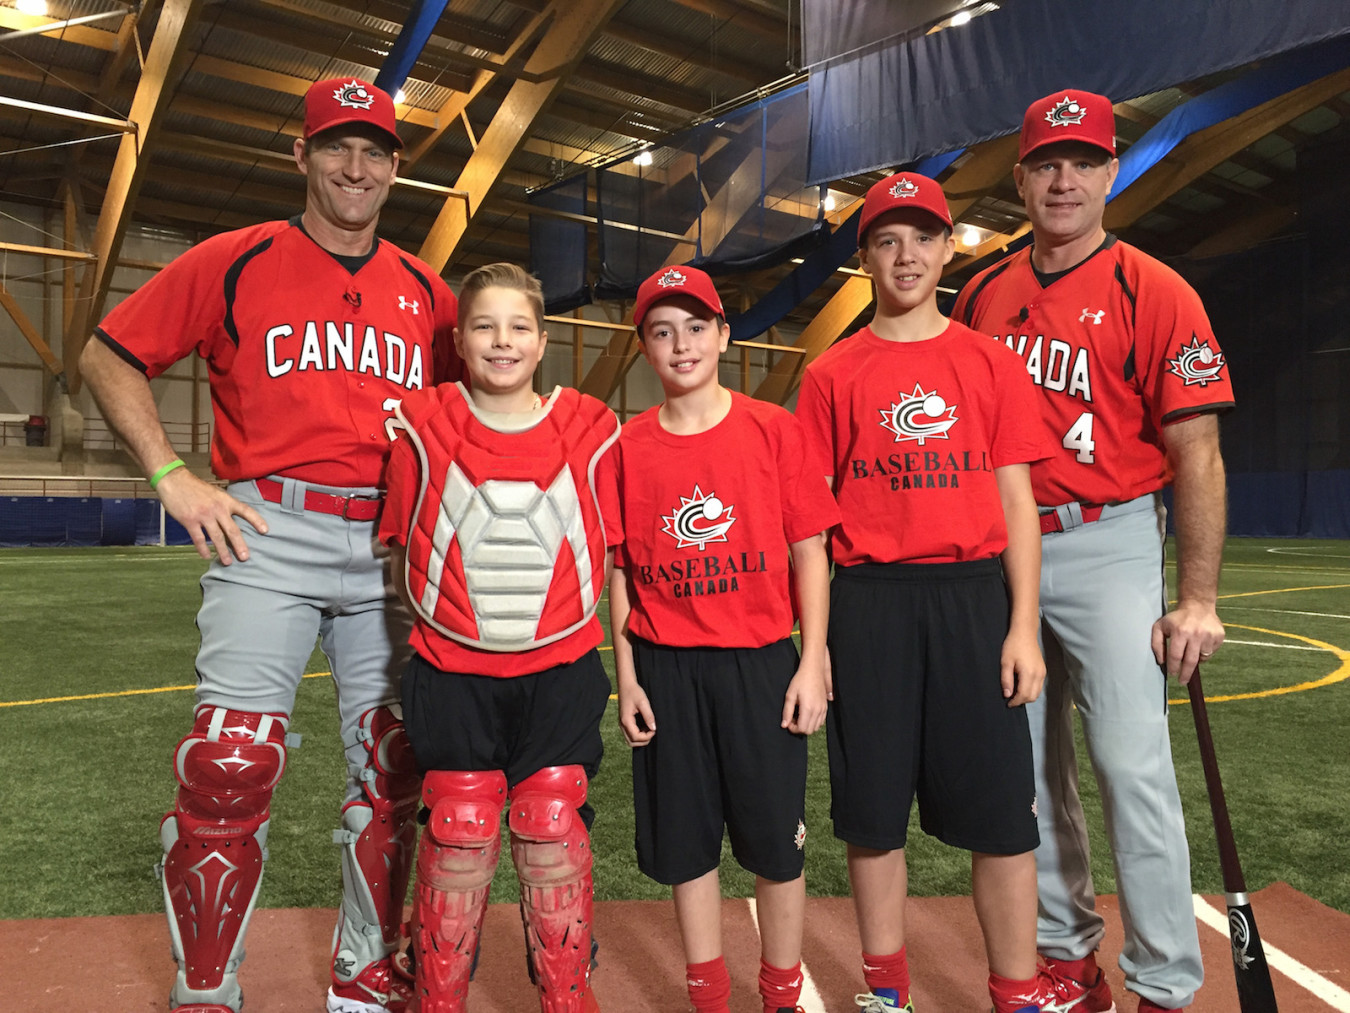 BASEBALL CANADA INSTRUCTIONAL VIDEOS